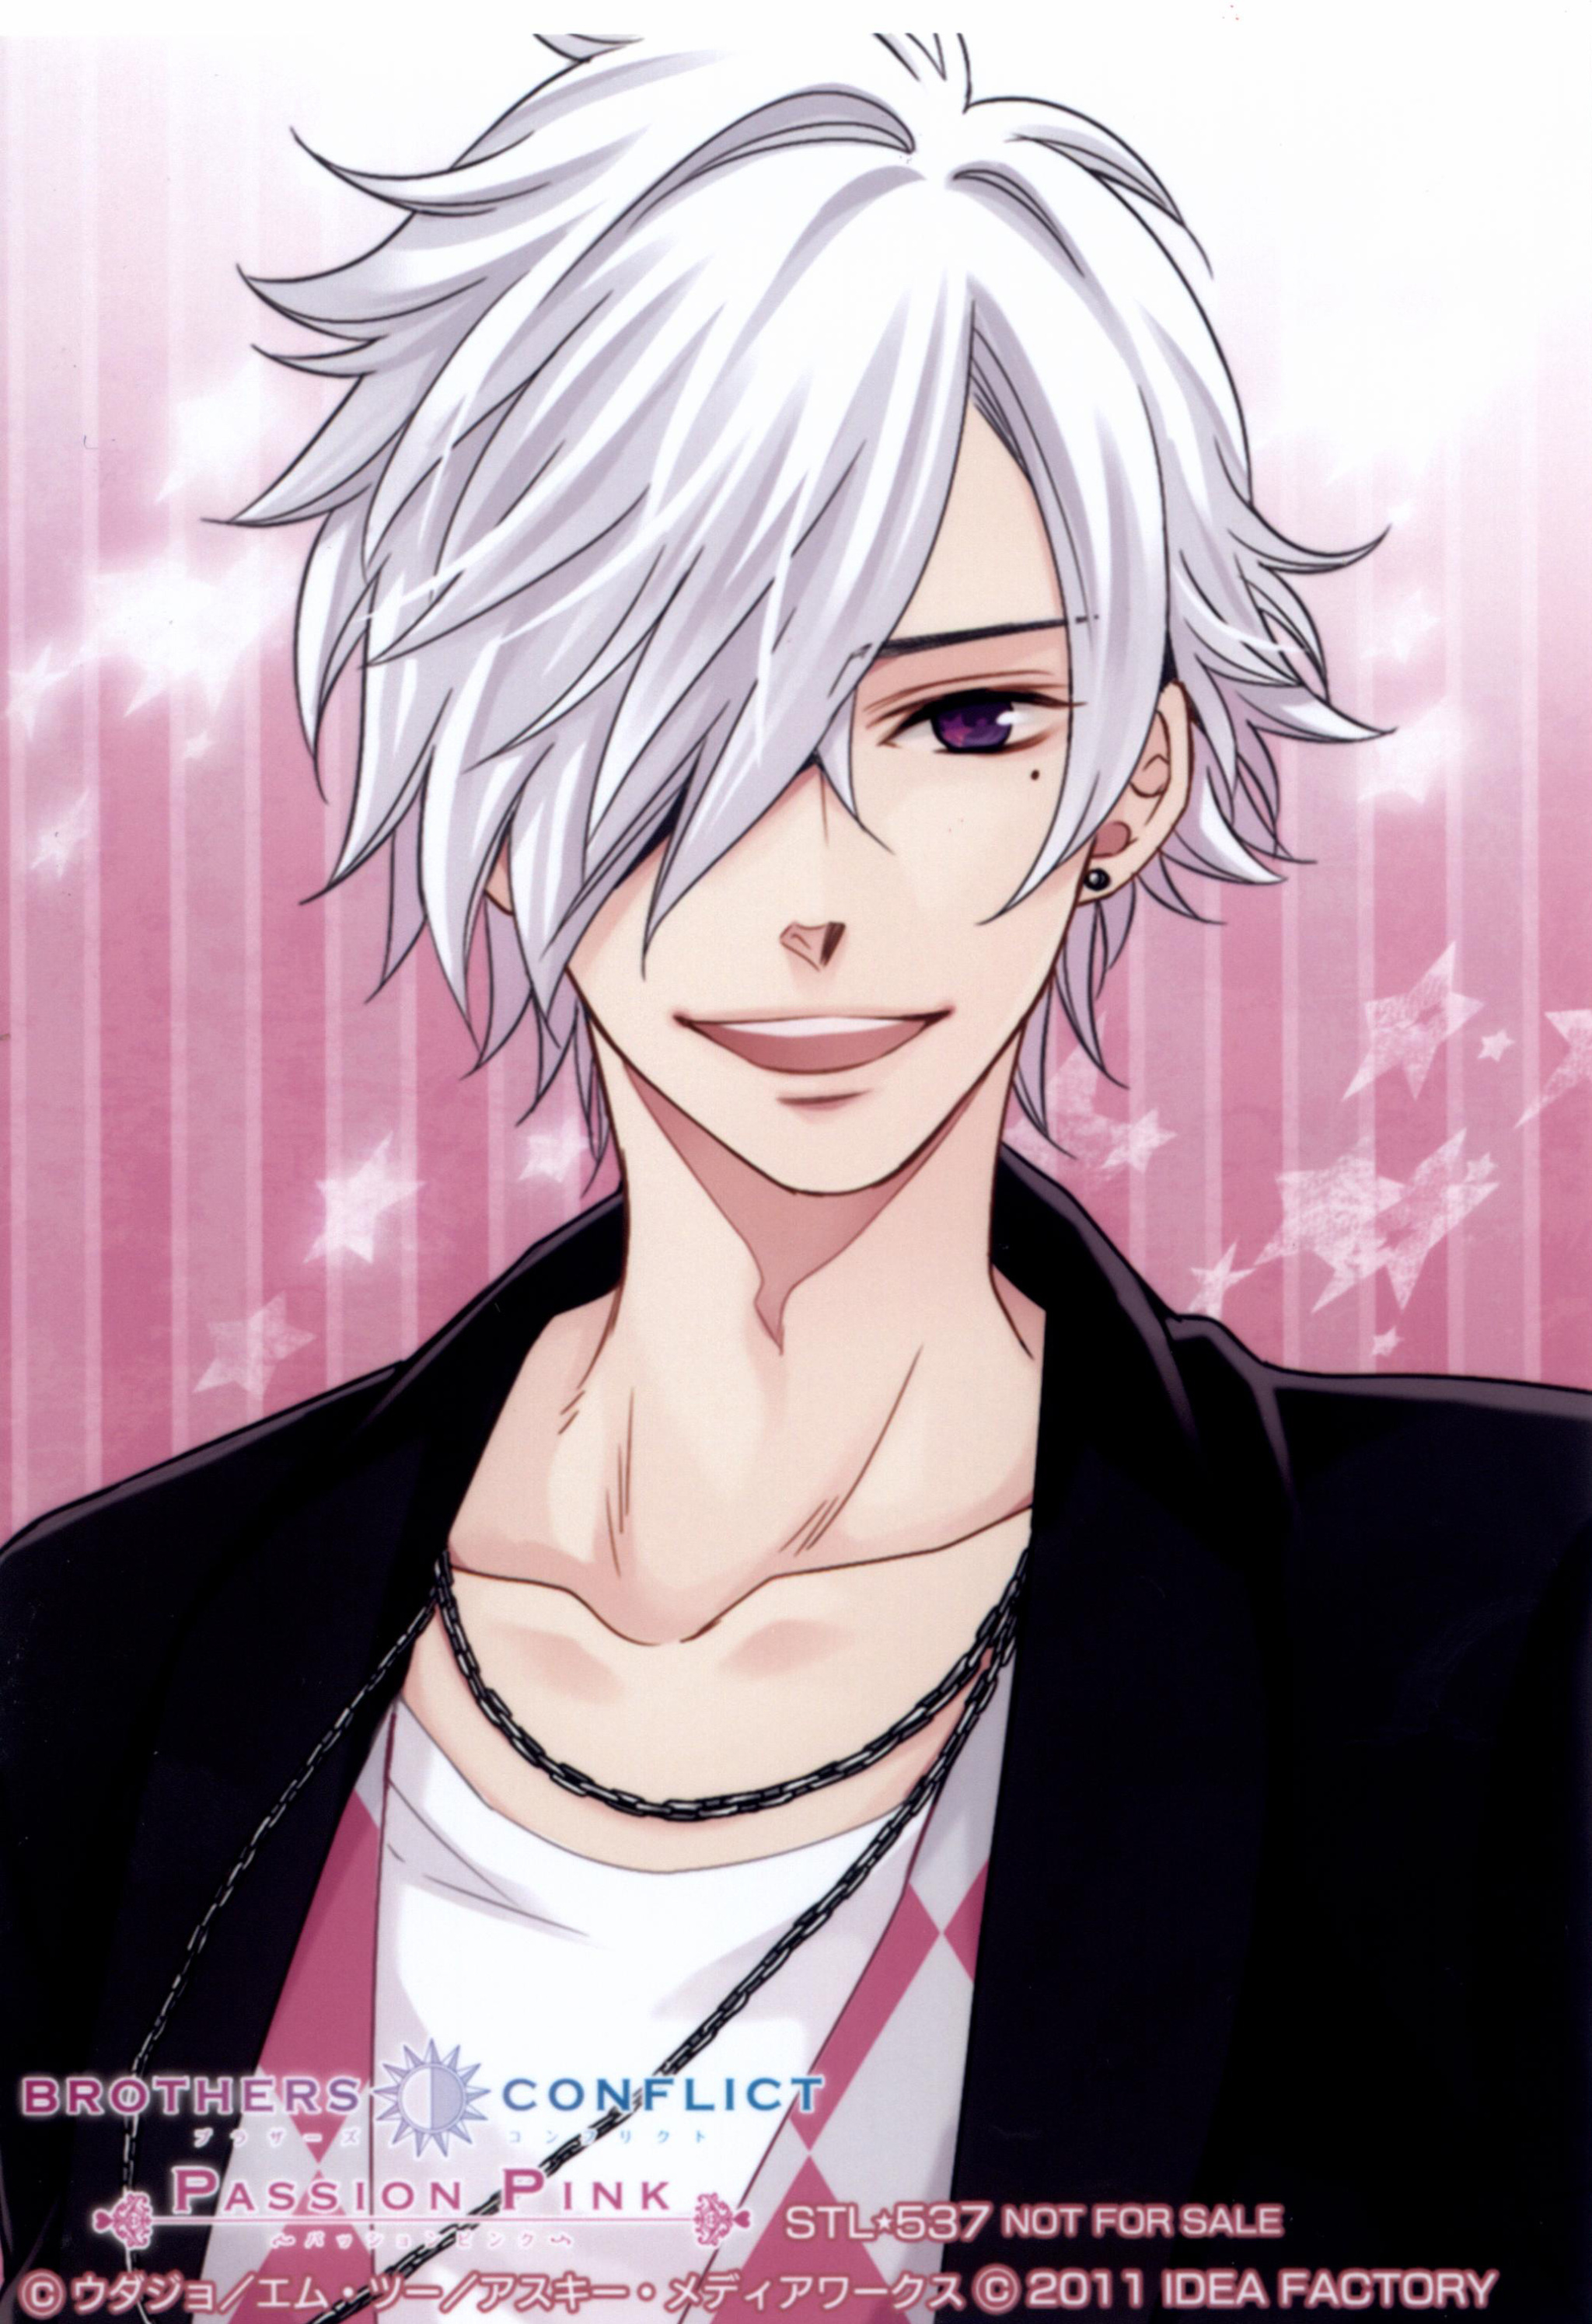 White-Haired Anime Characters ^ ^ - Anime - Fanpop